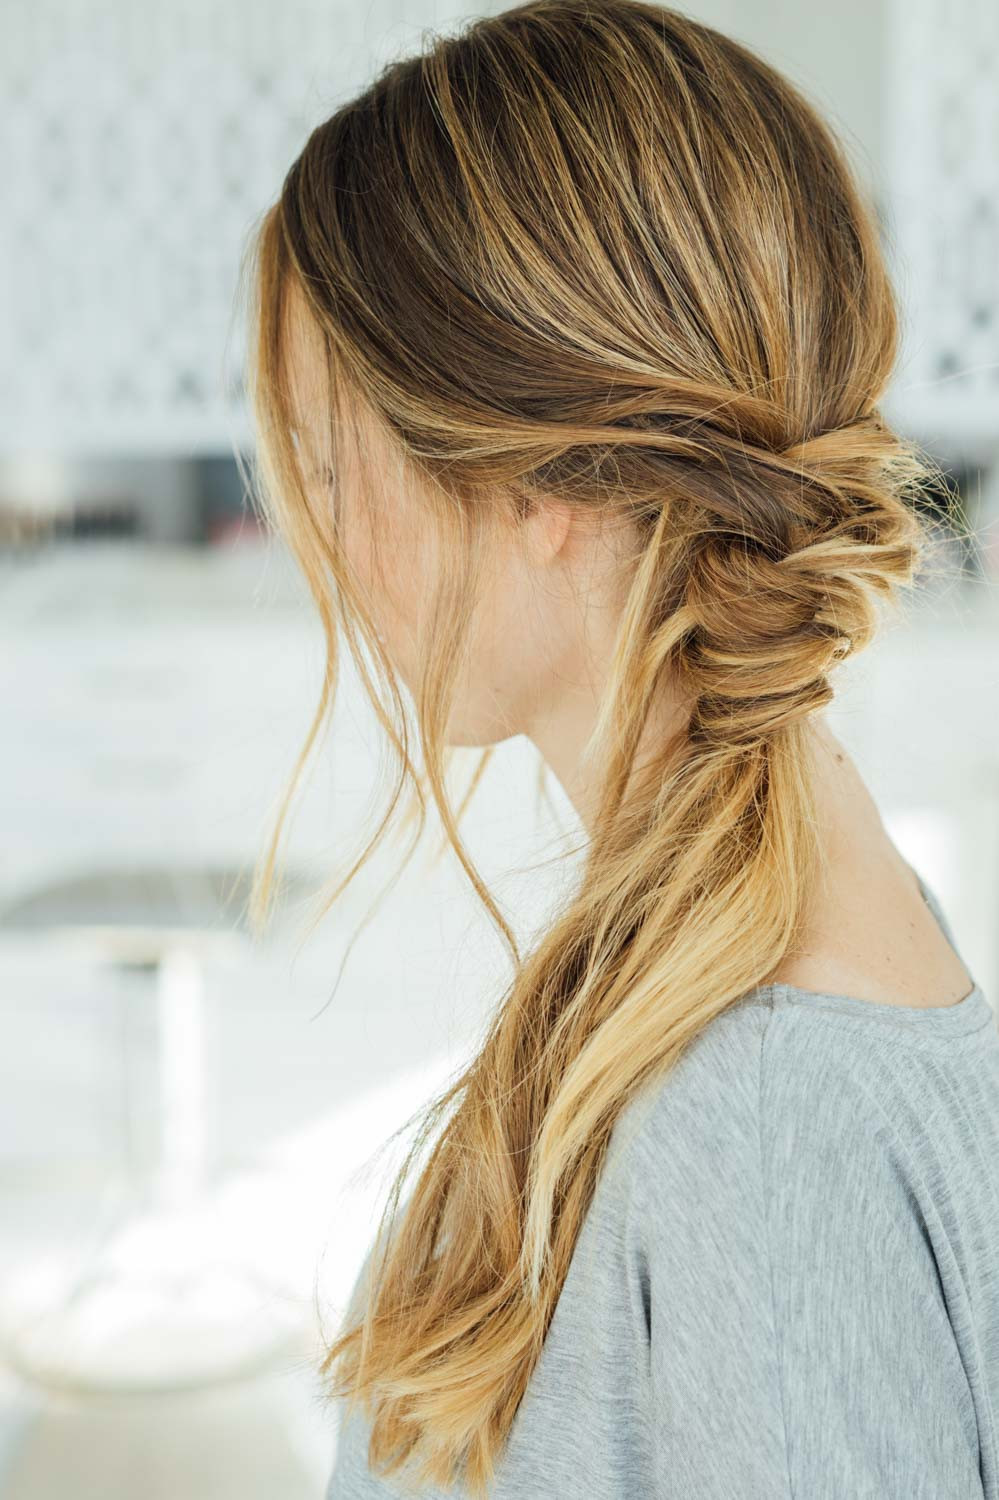 Best ideas about Summer Haircuts For Girls . Save or Pin 16 Easy Hairstyles for Hot Summer Days Now.